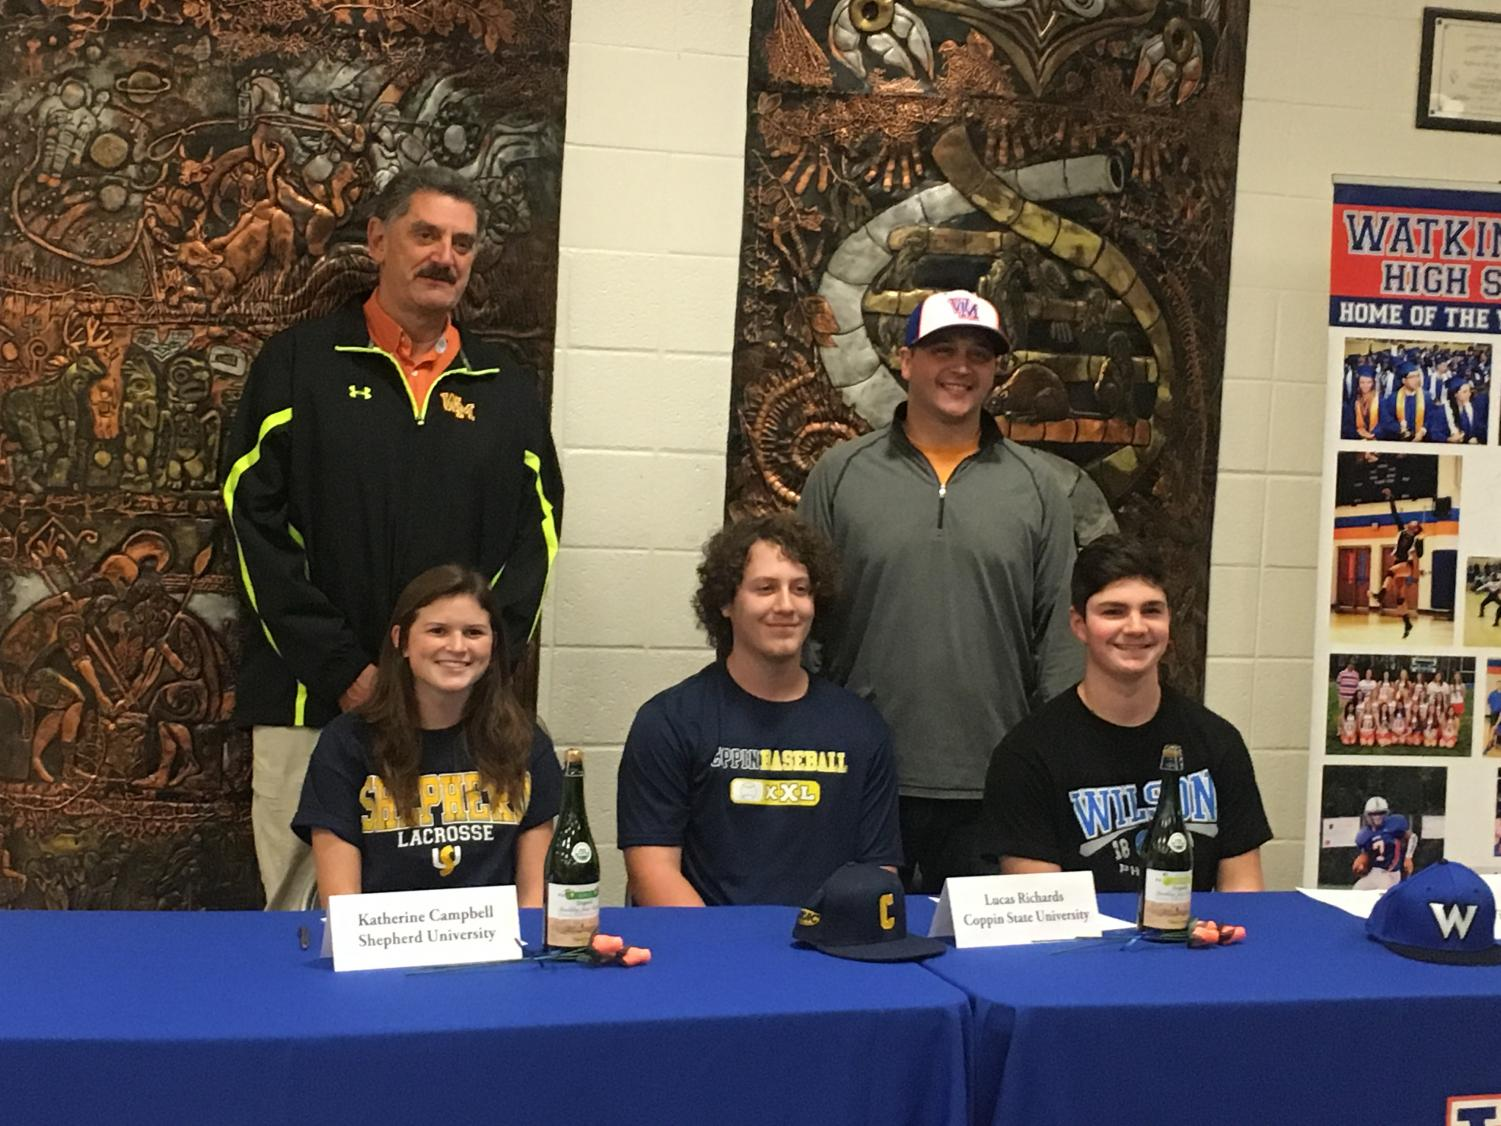 Katherine Campbell(Left), Lucas Richards(middle), and Kevin Finn(Right) with their coaches after signing letter of intent